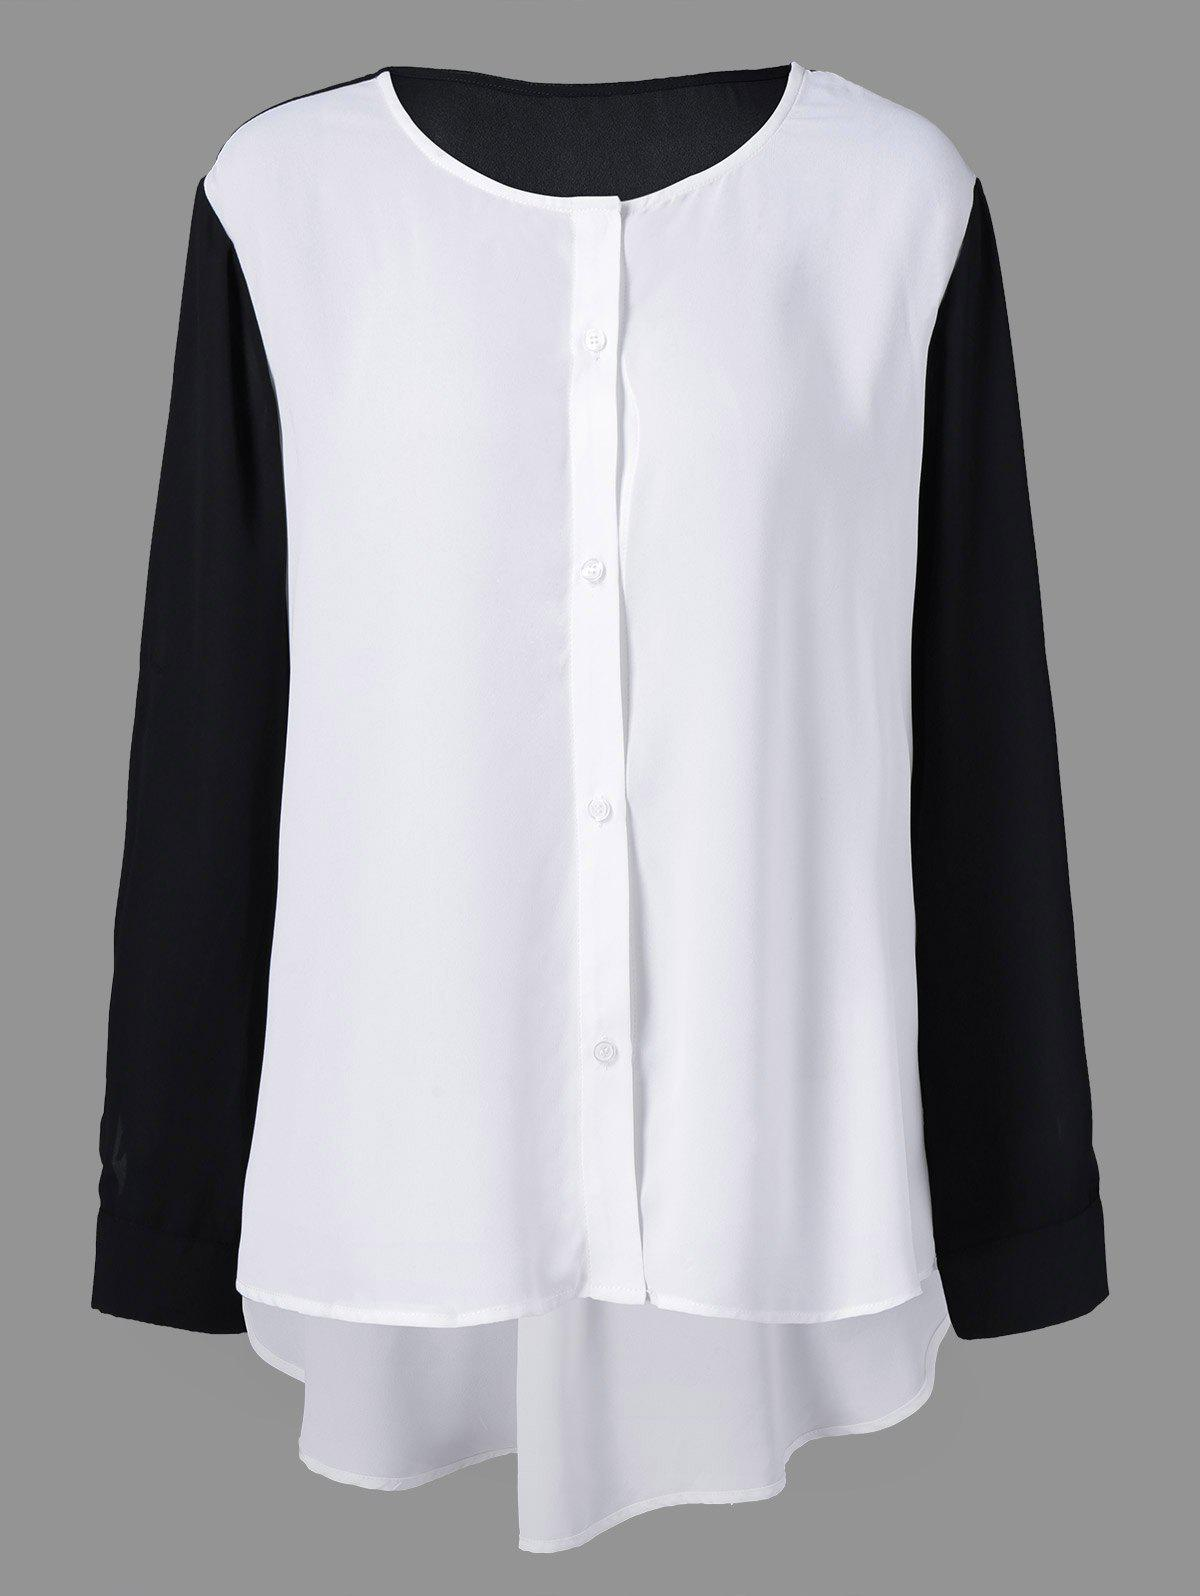 Plus Size High Low Button Down BlouseWOMEN<br><br>Size: XL; Color: WHITE AND BLACK; Material: Polyester; Shirt Length: Long; Sleeve Length: Full; Collar: Scoop Neck; Style: Fashion; Season: Fall,Spring; Pattern Type: Patchwork; Weight: 0.380kg; Package Contents: 1 x Blouse;